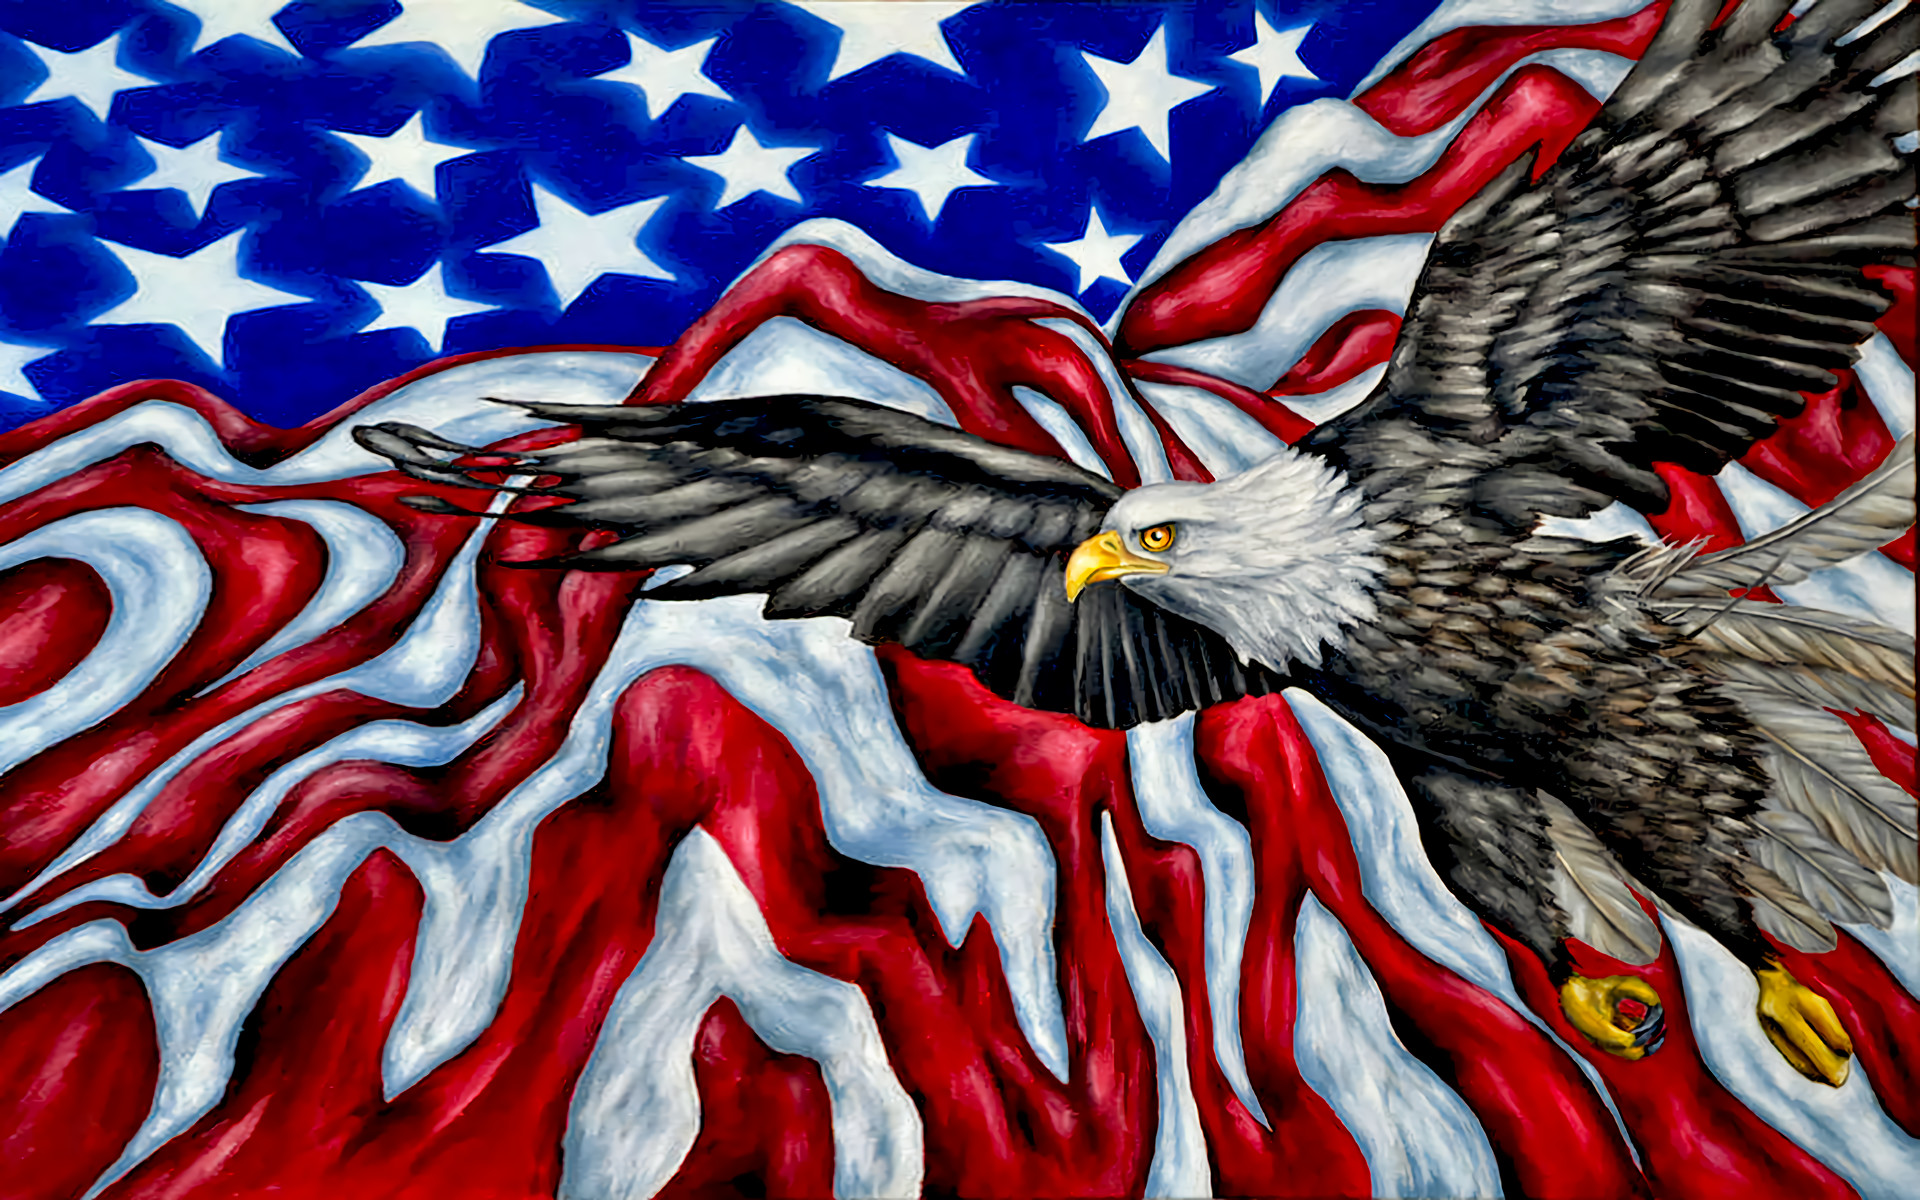 1920x1200 American Flag Artistic Bald Eagle Eagle Flag Wings · HD Wallpaper |  Background ID:783236